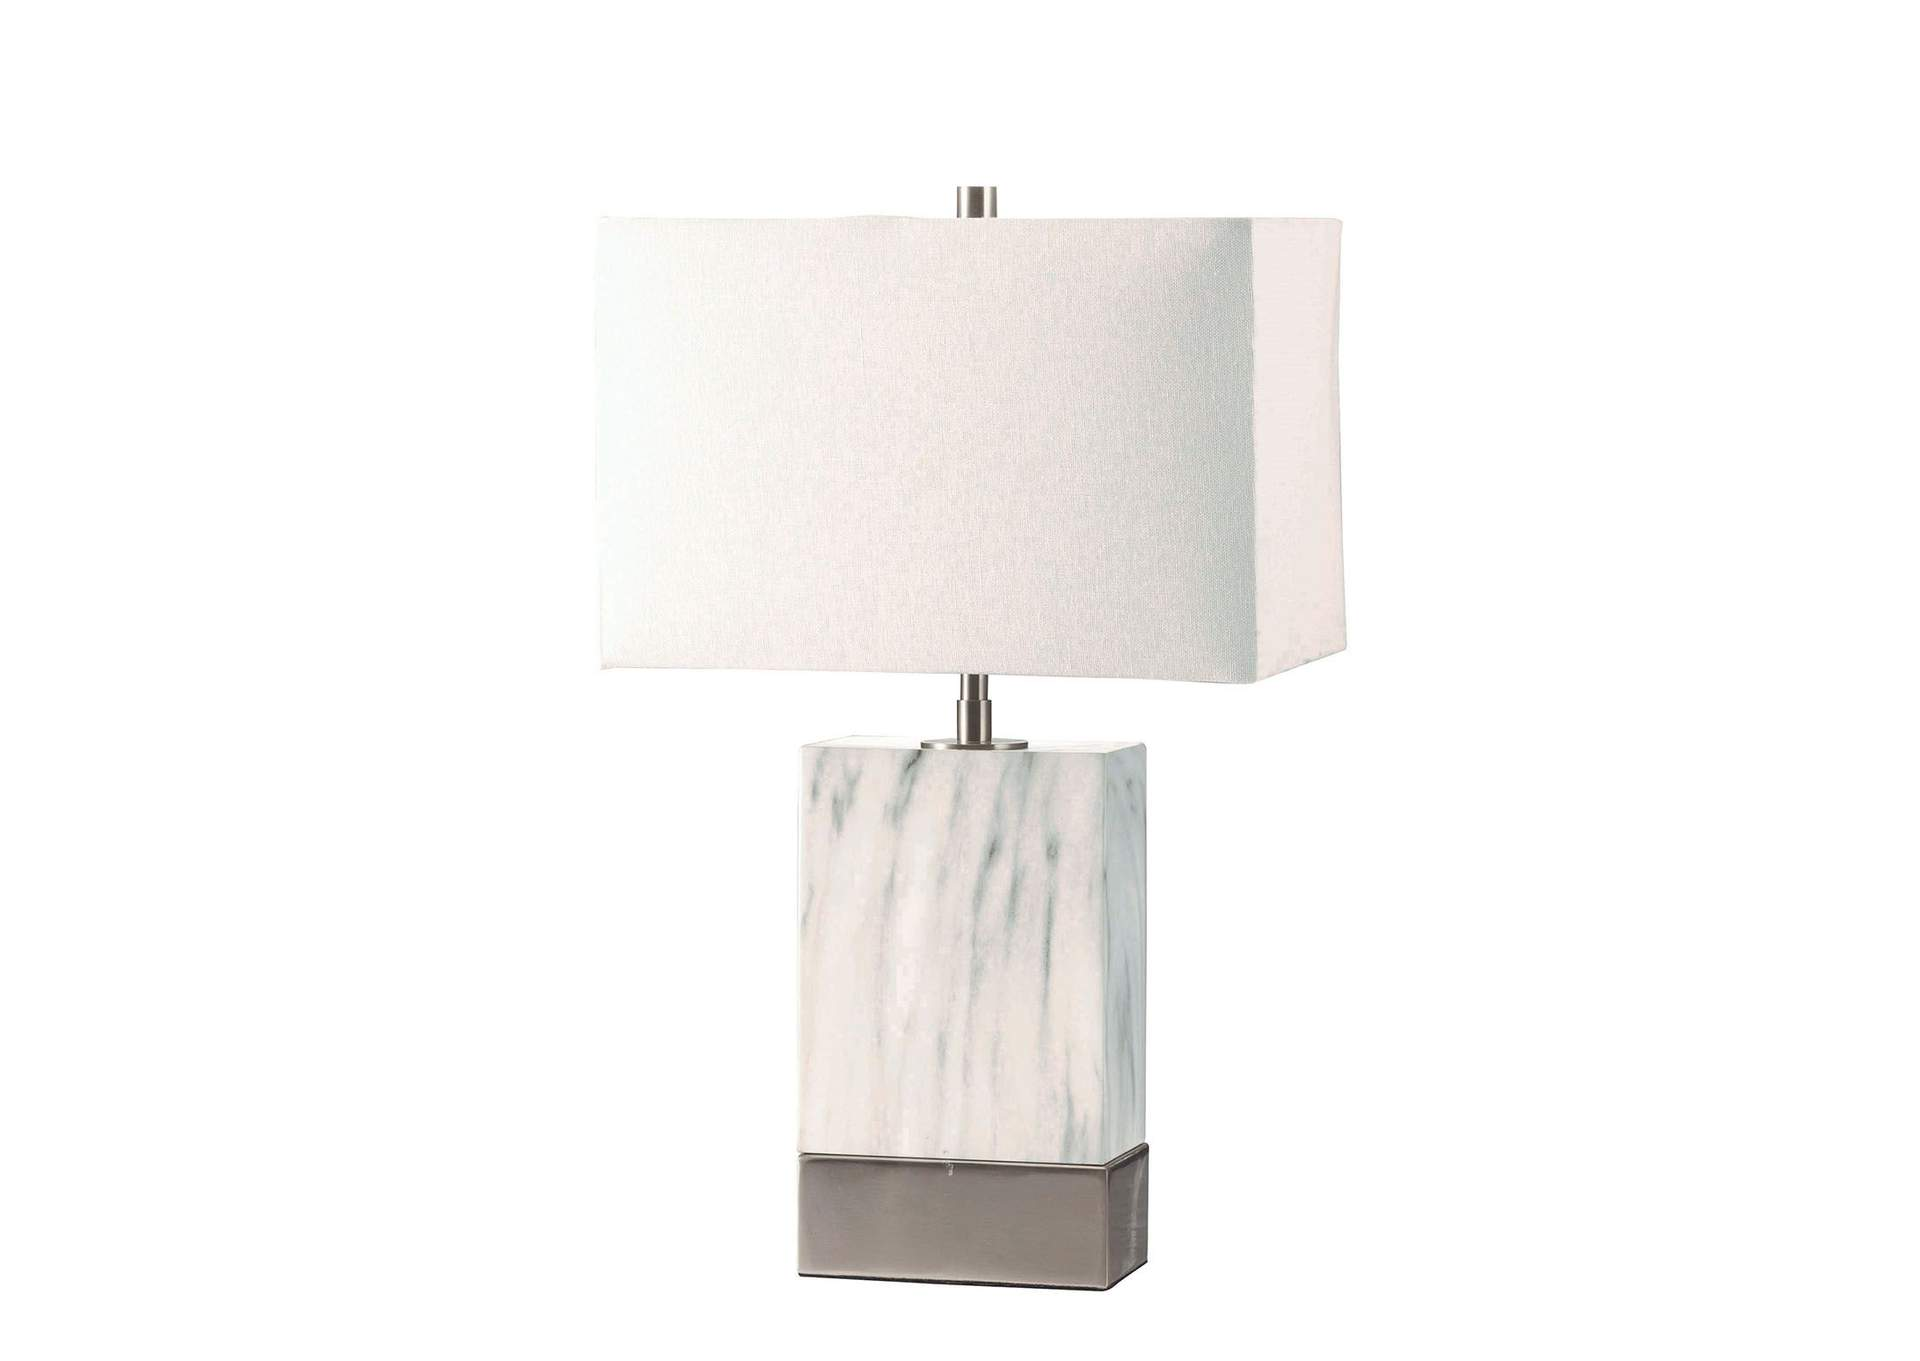 Libe White/Nickel Table Lamp,Acme